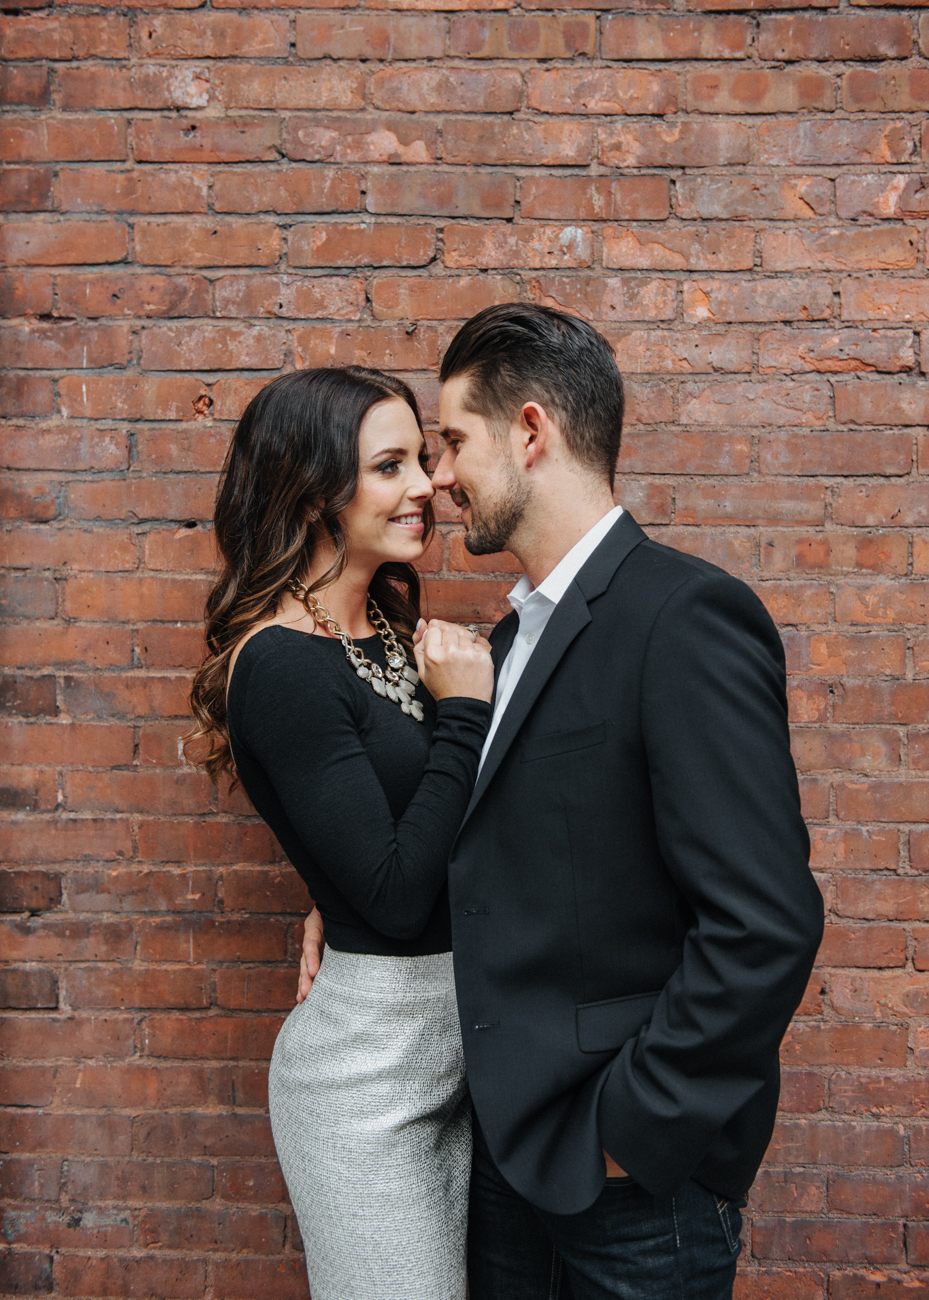 kaoverii_silva_photography_lauren+adam_engagement_photography_vancouver-5.jpg